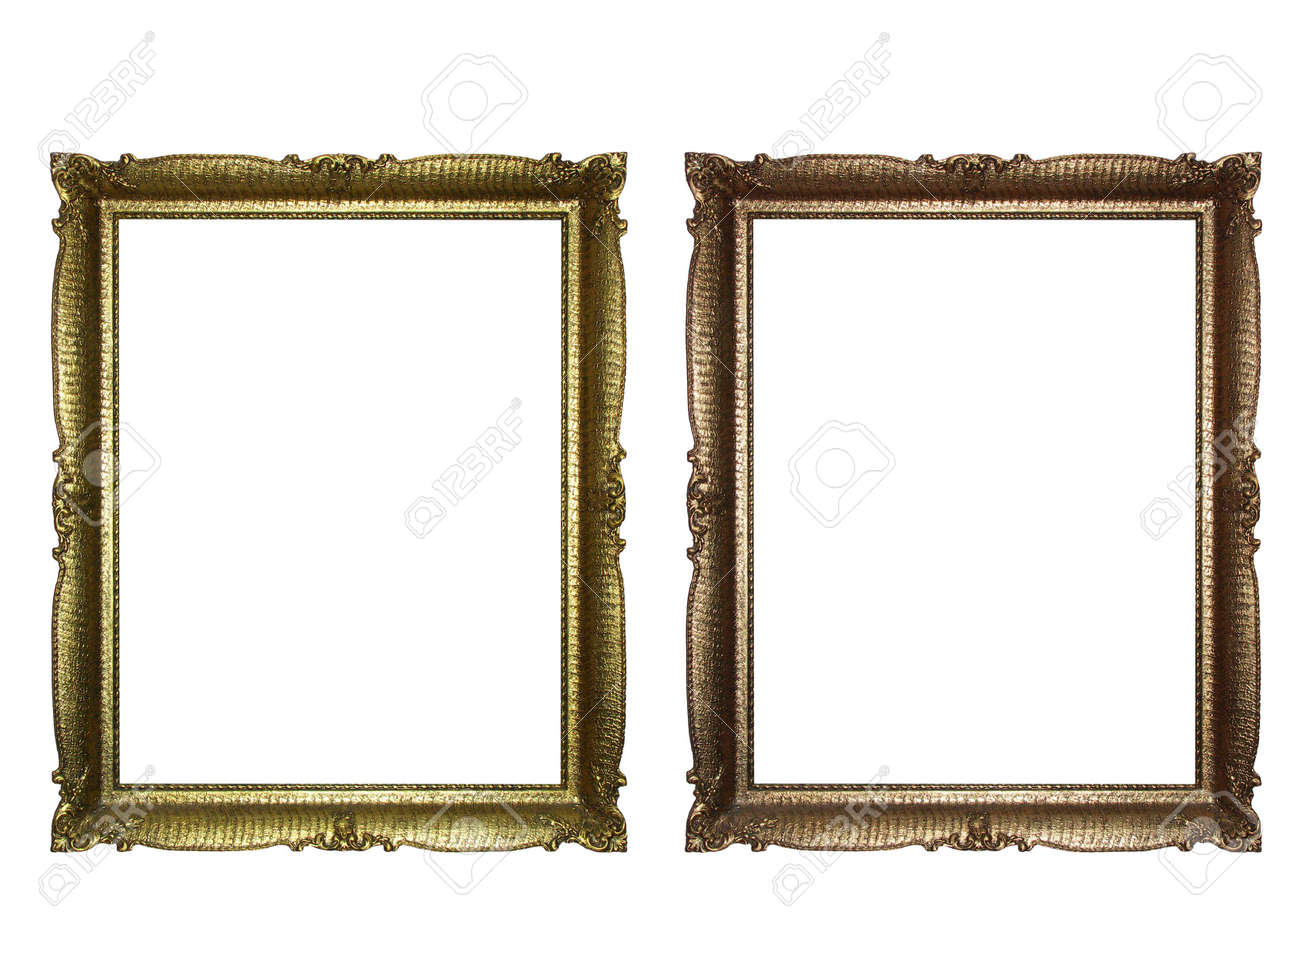 massive old stylistic frame 03 Stock Photo - 3838665